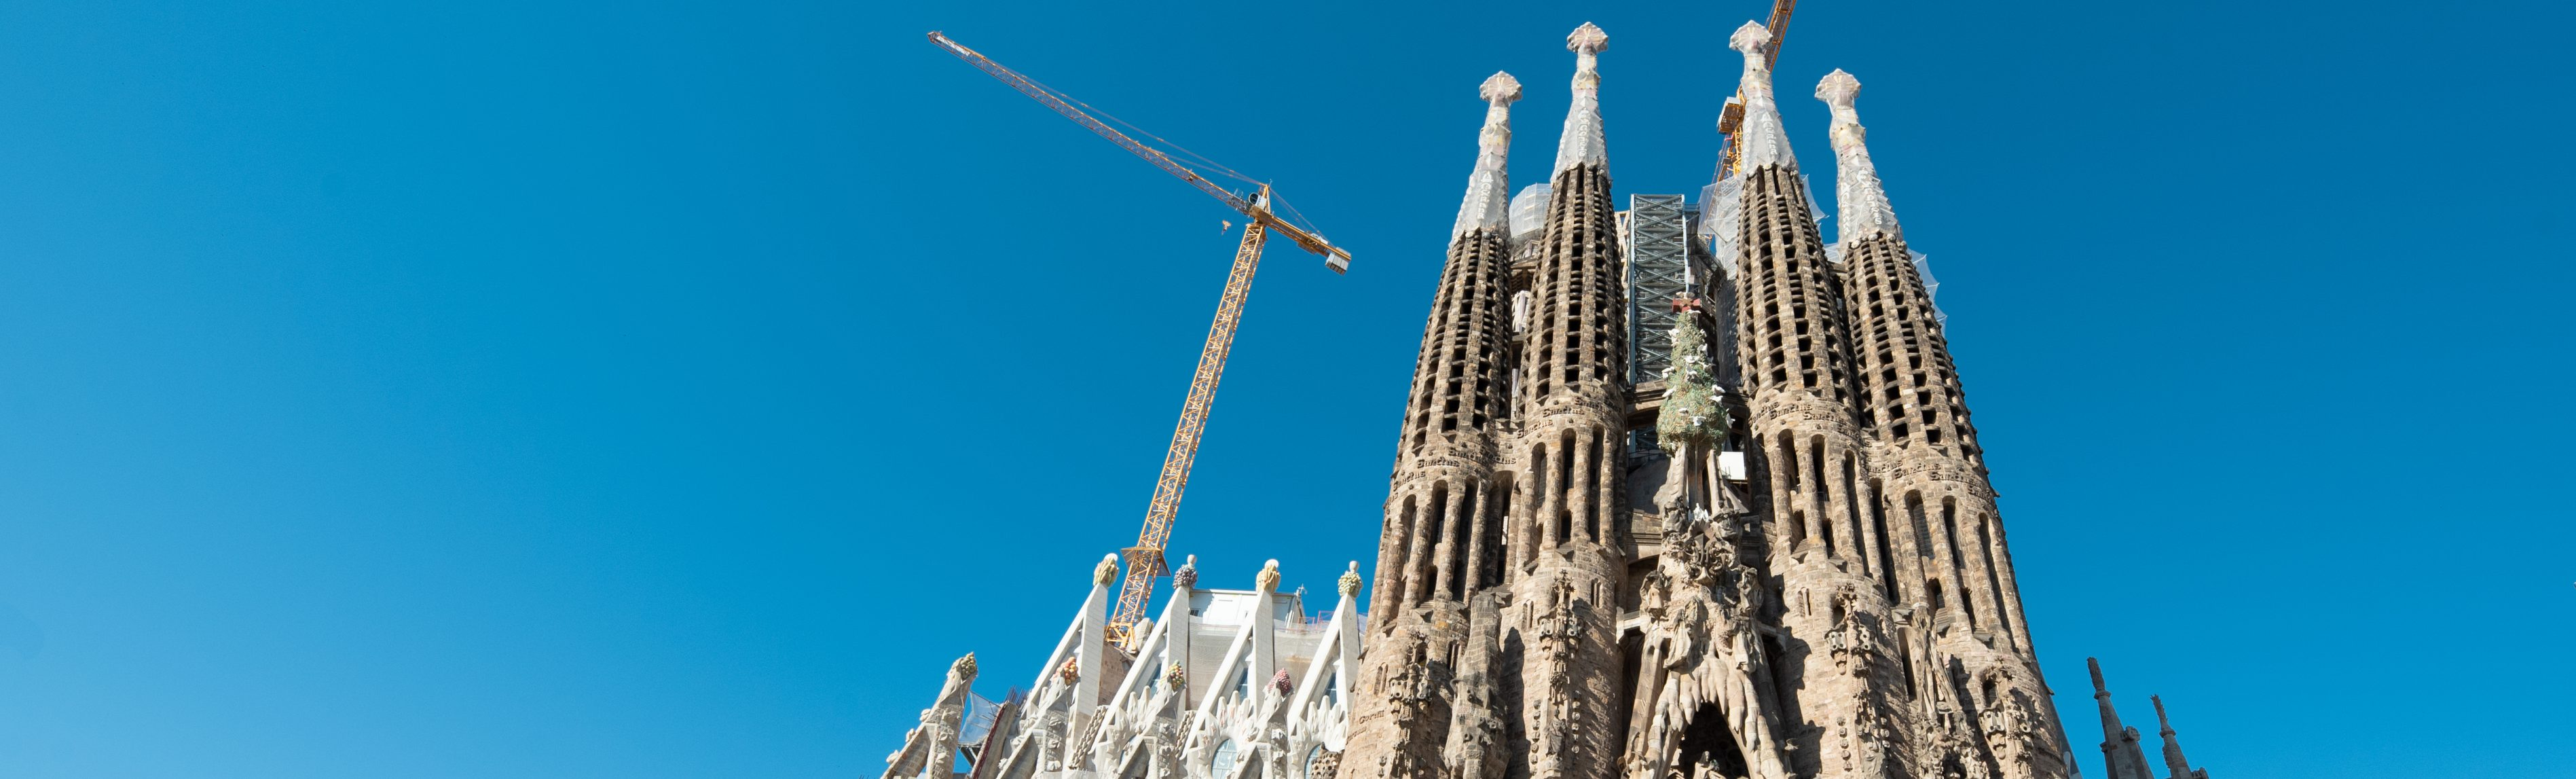 sagrada familia passion façade under construction